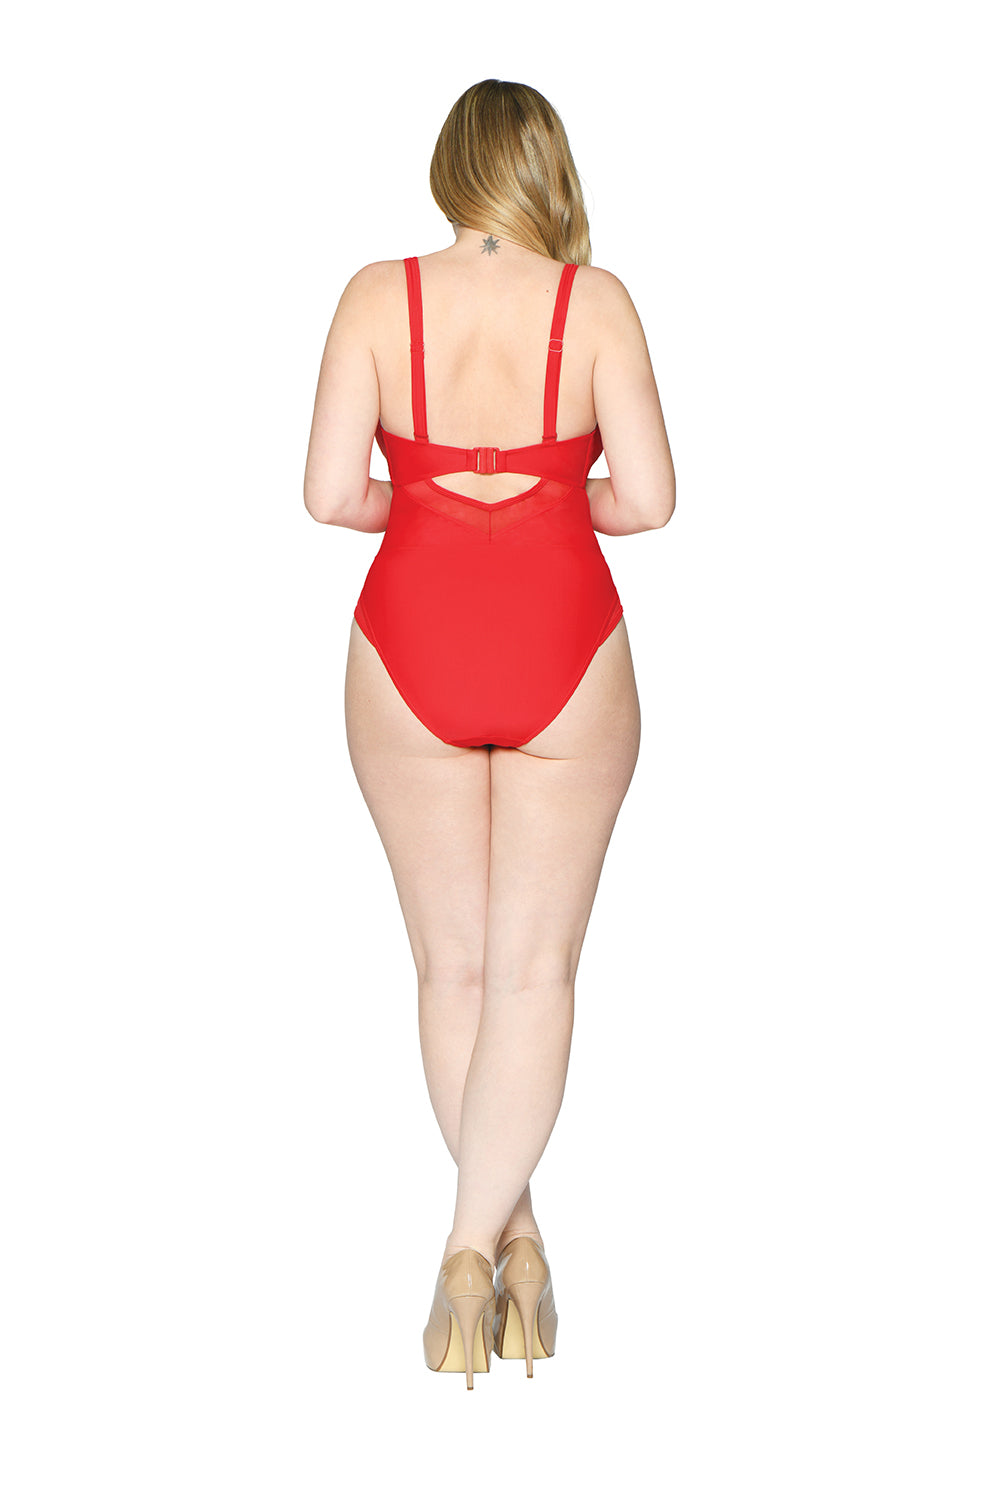 Curvy Kate Sheer Class Plunge Swimsuit CS001605